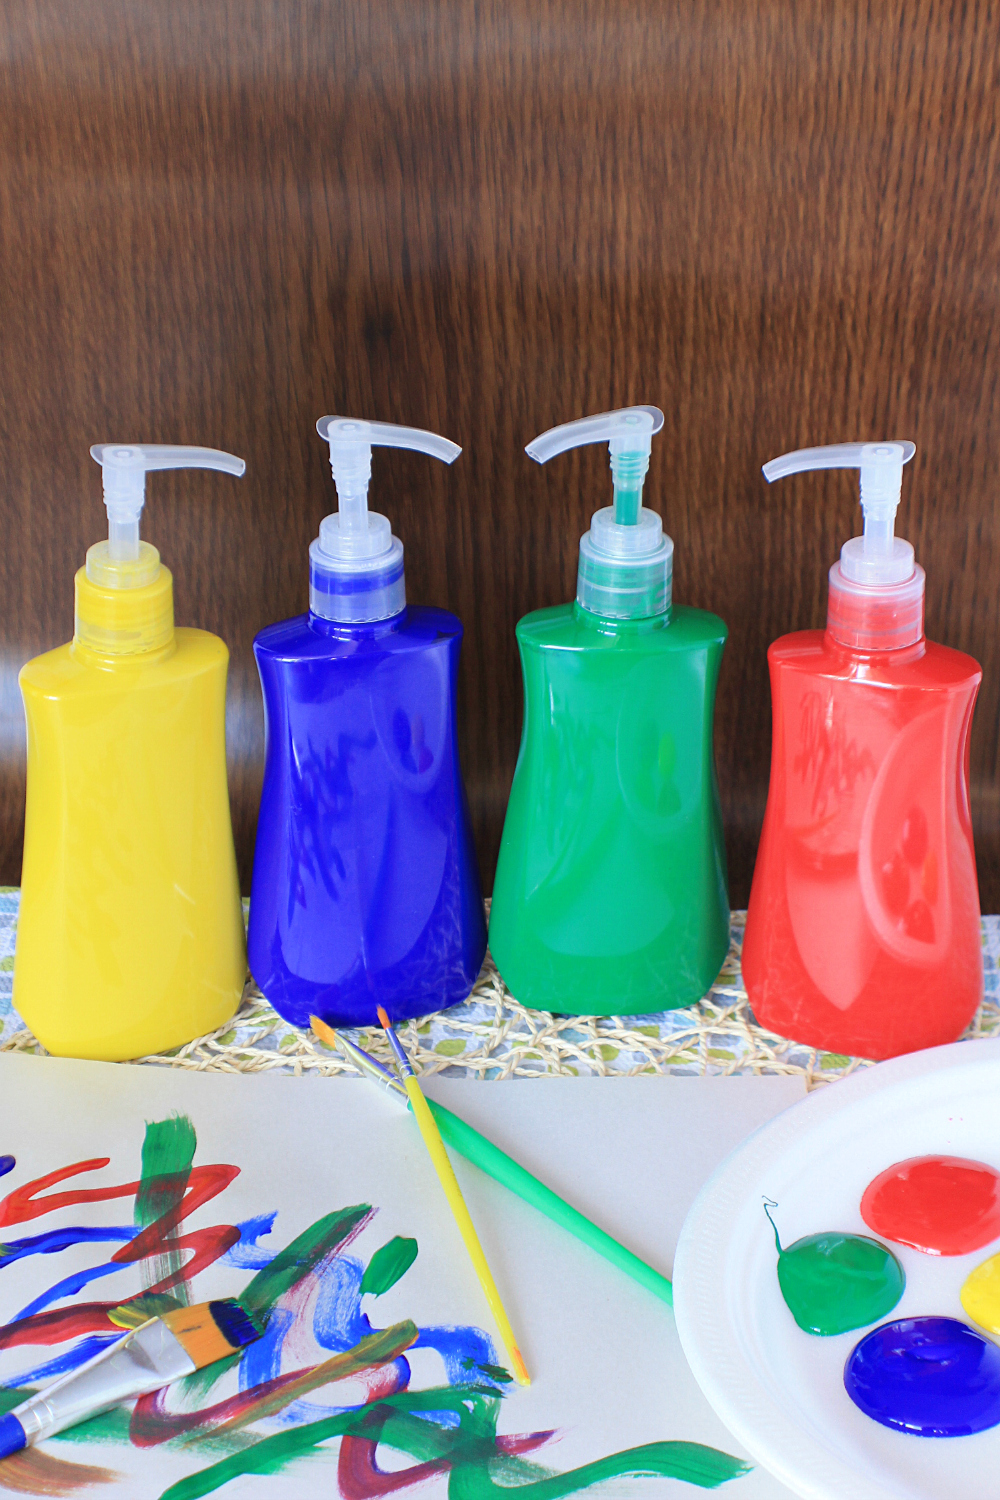 Hand Soap Container Paint Storage Mom Hack